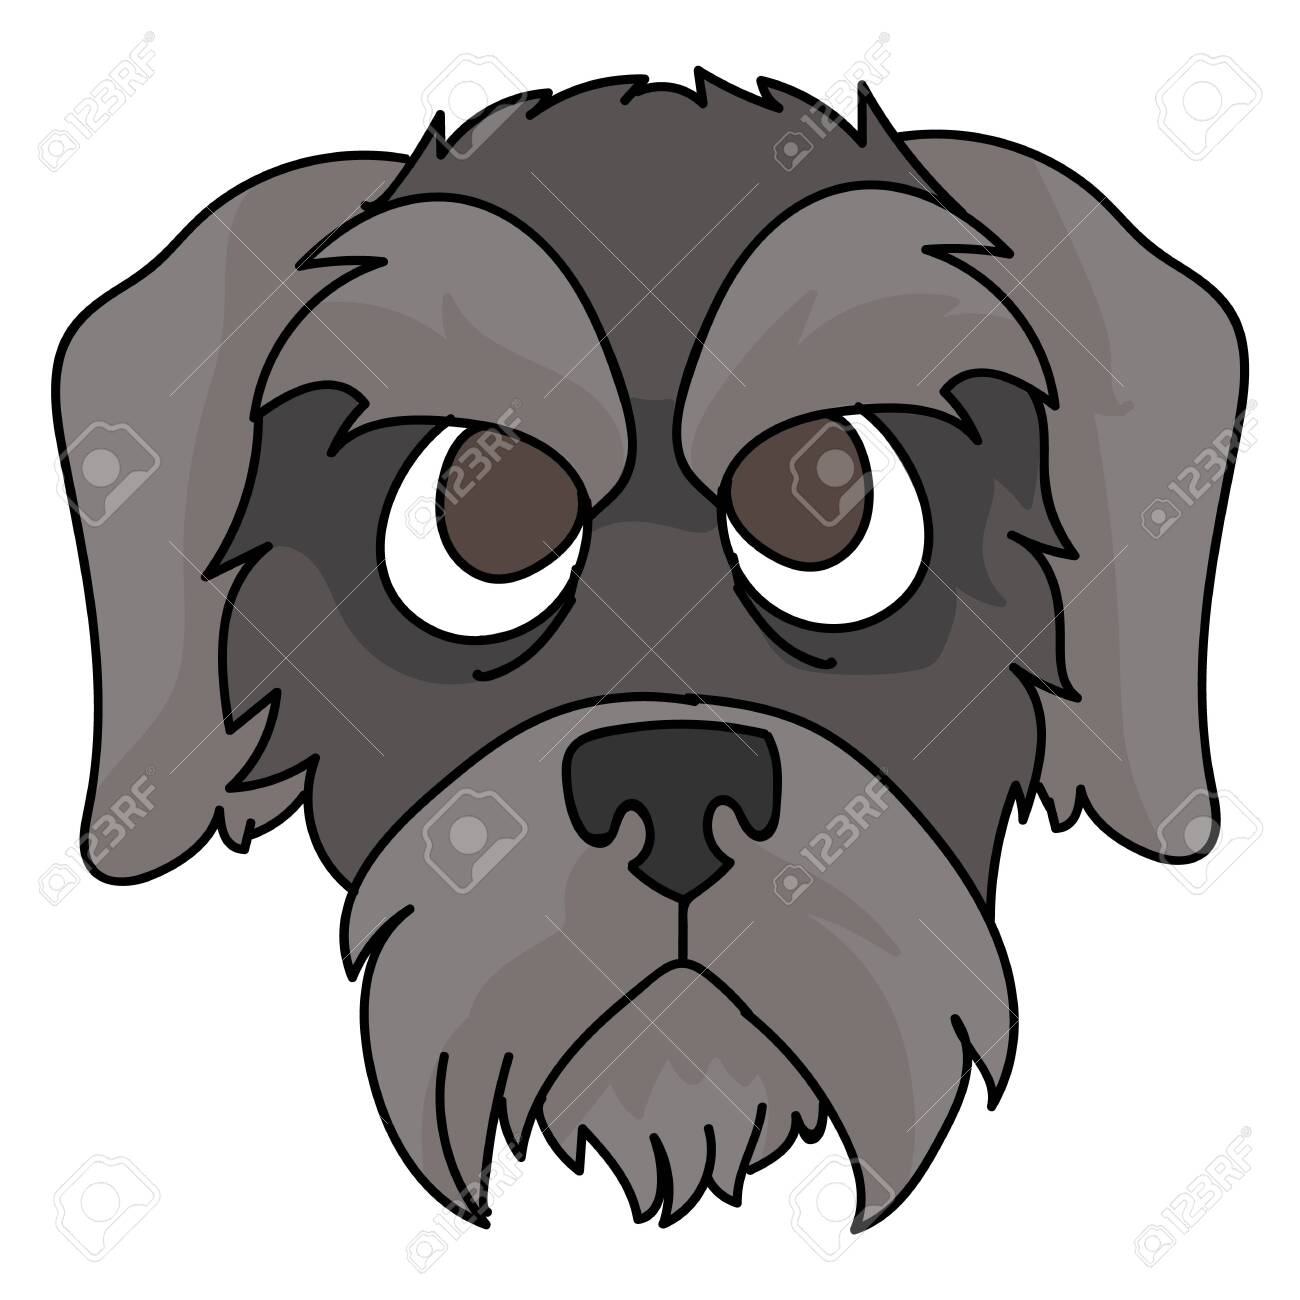 Cute Cartoon Schnauzer Puppy Dog Face Clipart Pedigree Kennel Royalty Free Cliparts Vectors And Stock Illustration Image 141294384